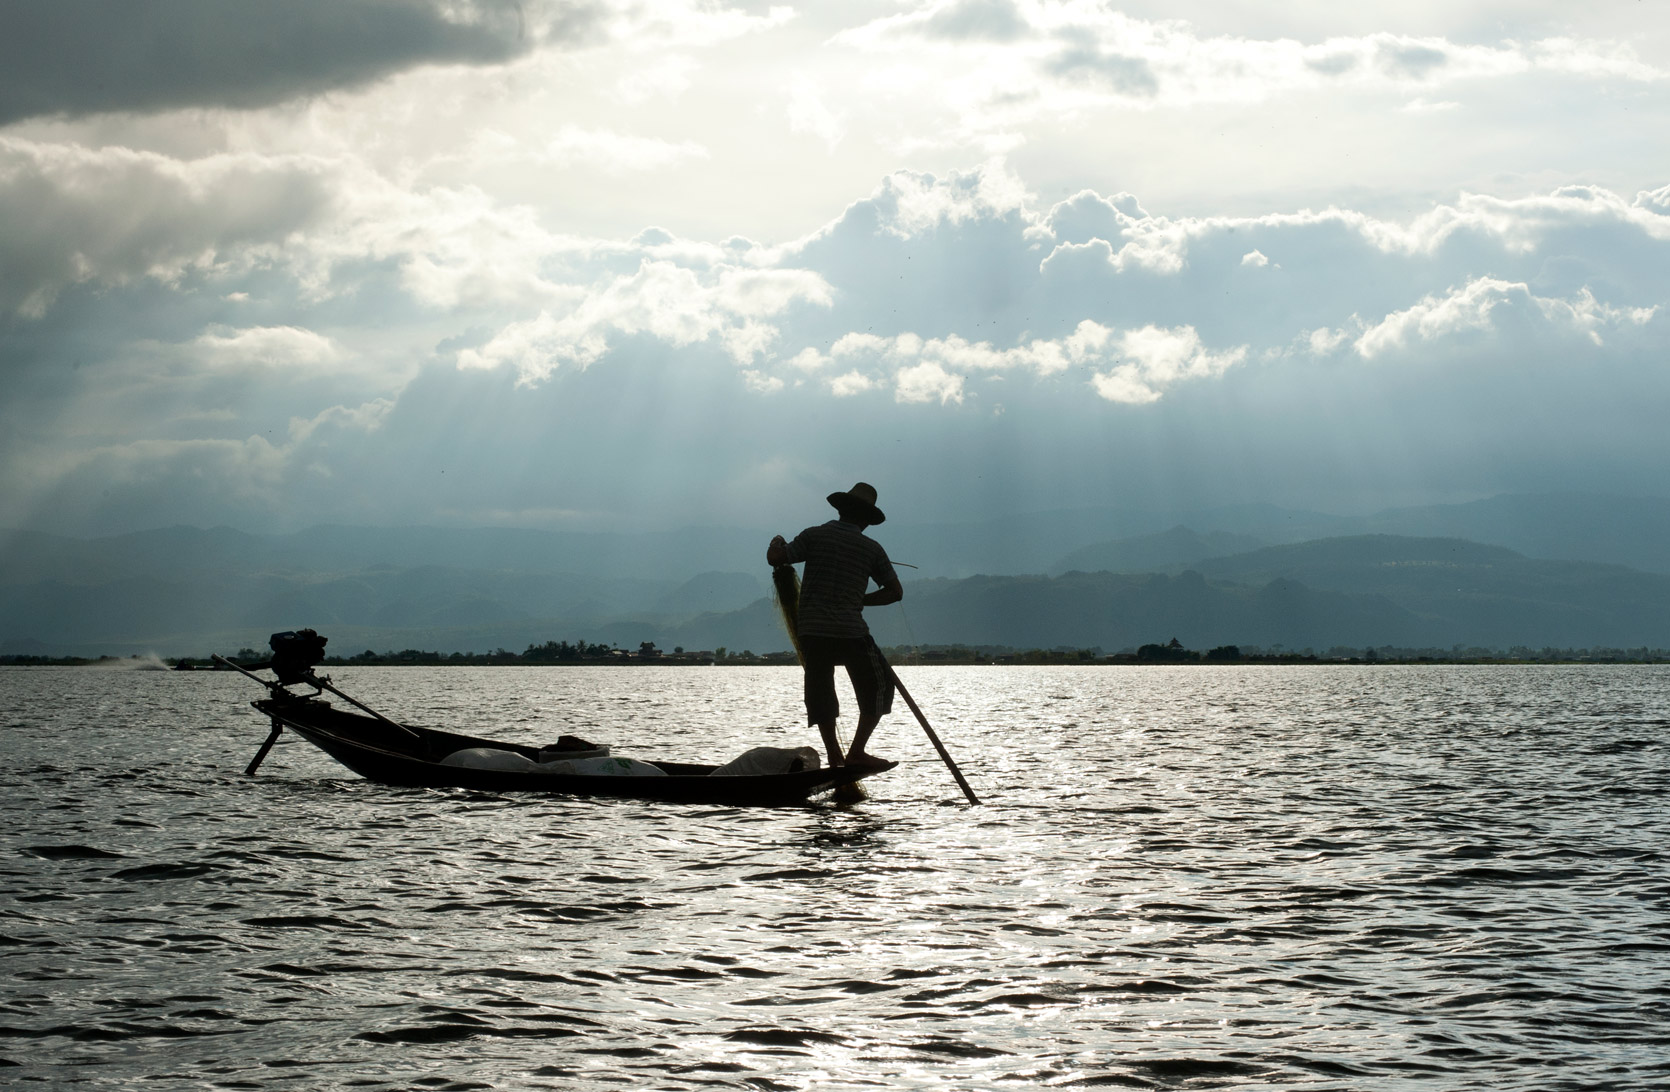 Silhouette of leg rowing fisherman from the Intha people, standing on boat untangling his net, Inle lake, Shan state.